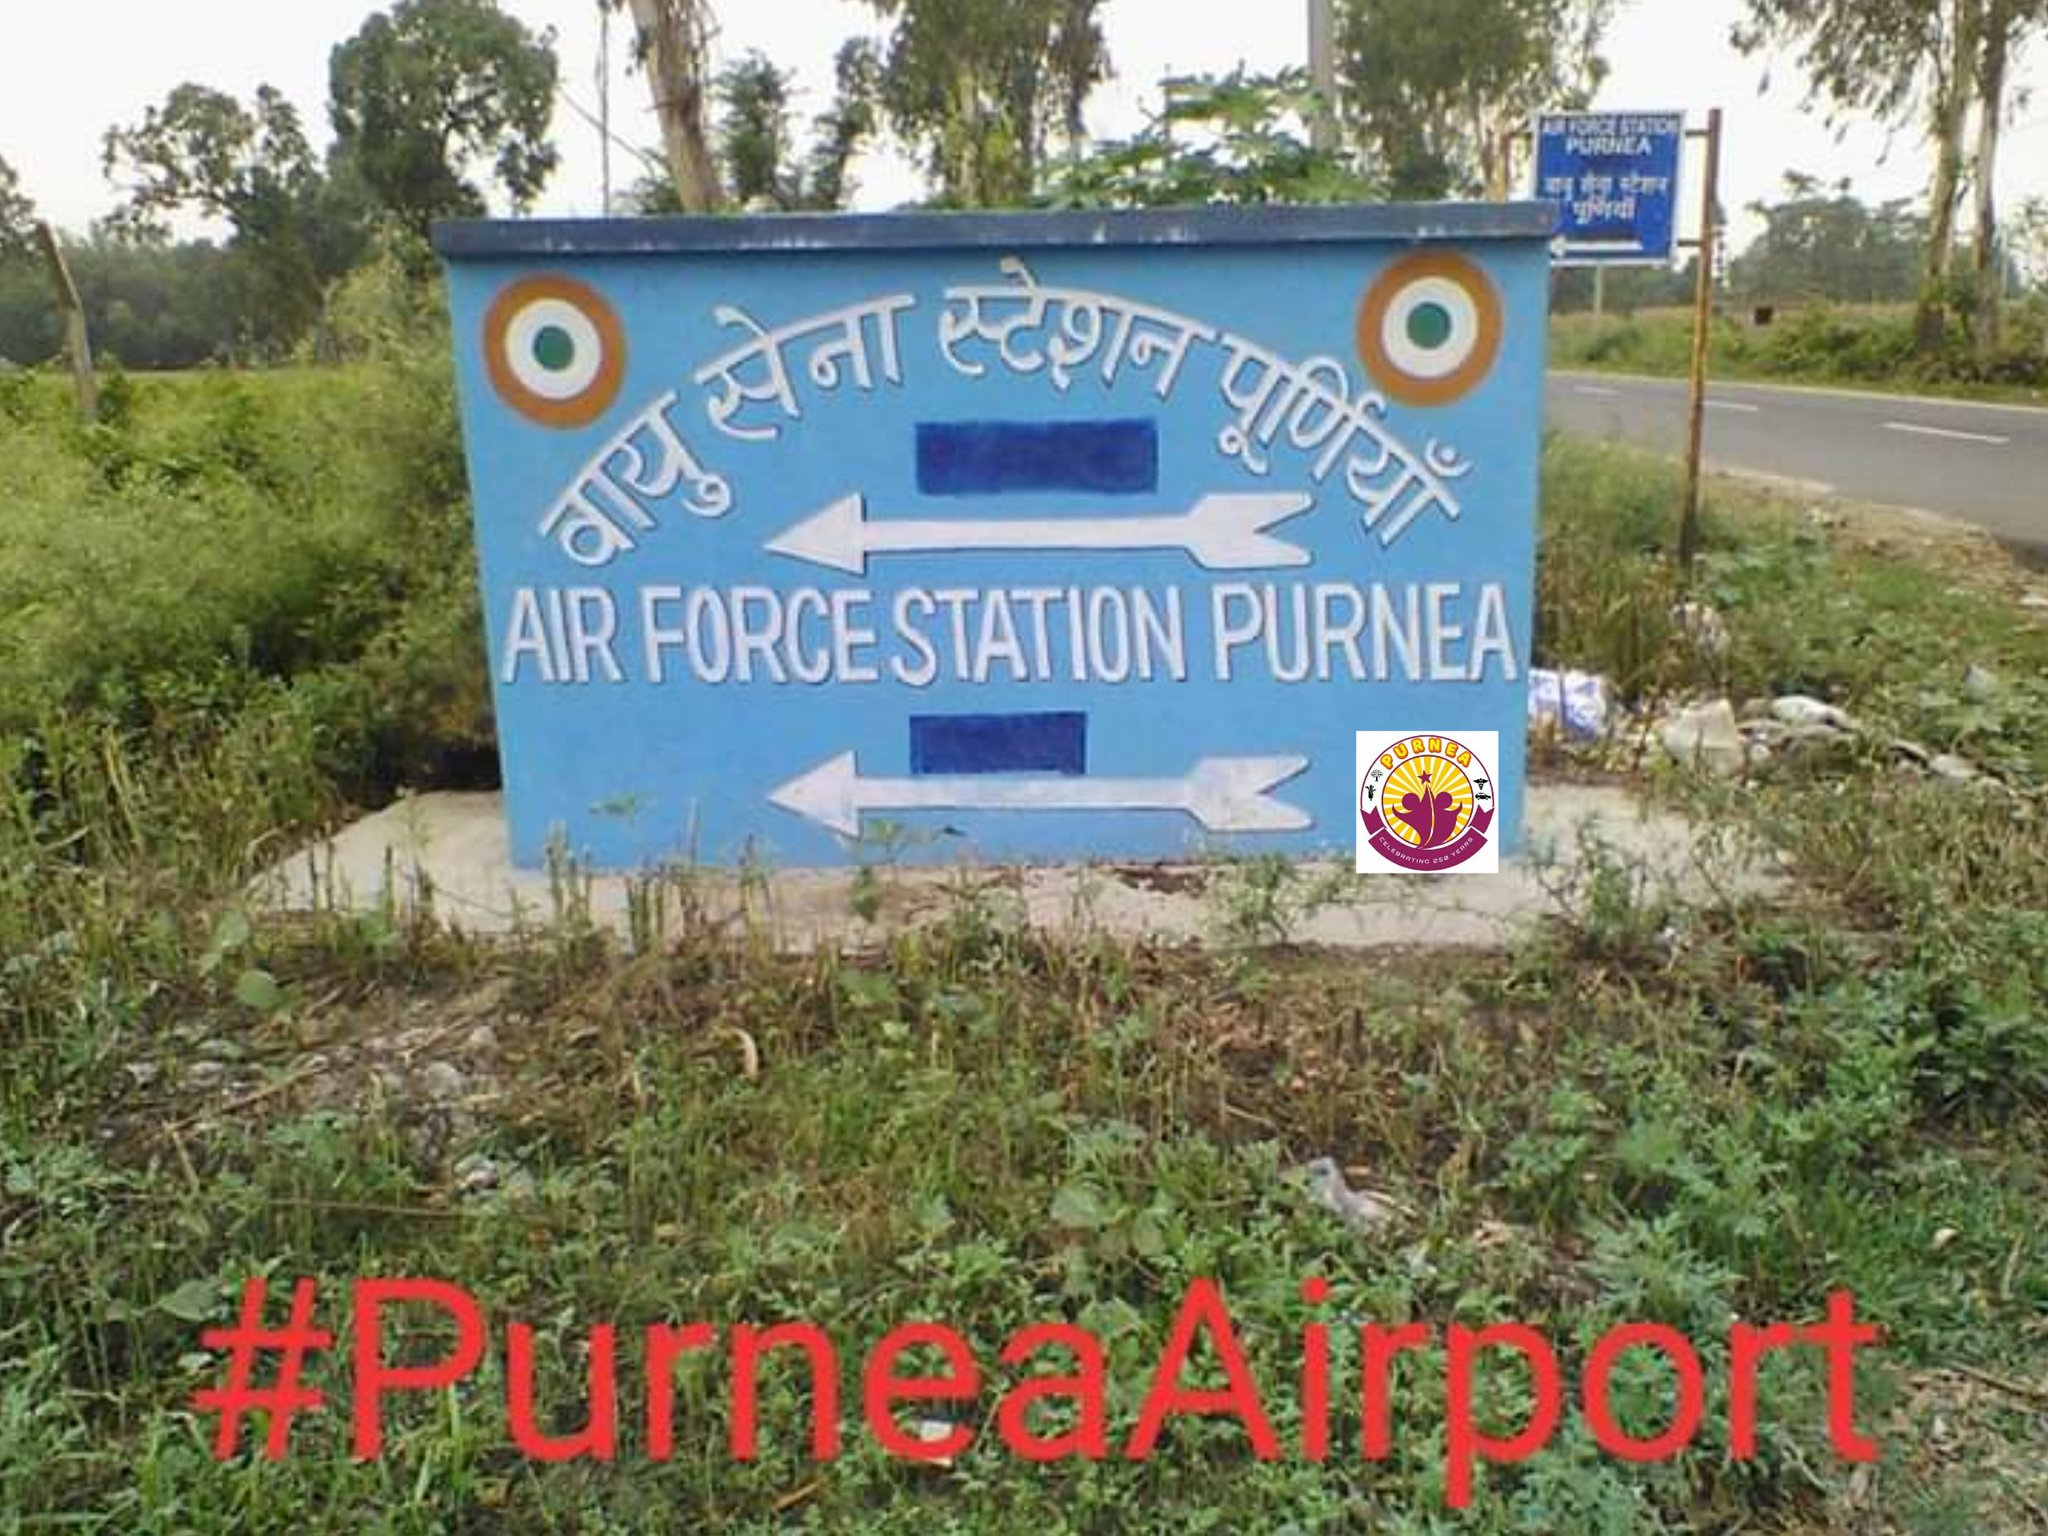 Air Force Station Purnea Bihar  IMAGES, GIF, ANIMATED GIF, WALLPAPER, STICKER FOR WHATSAPP & FACEBOOK